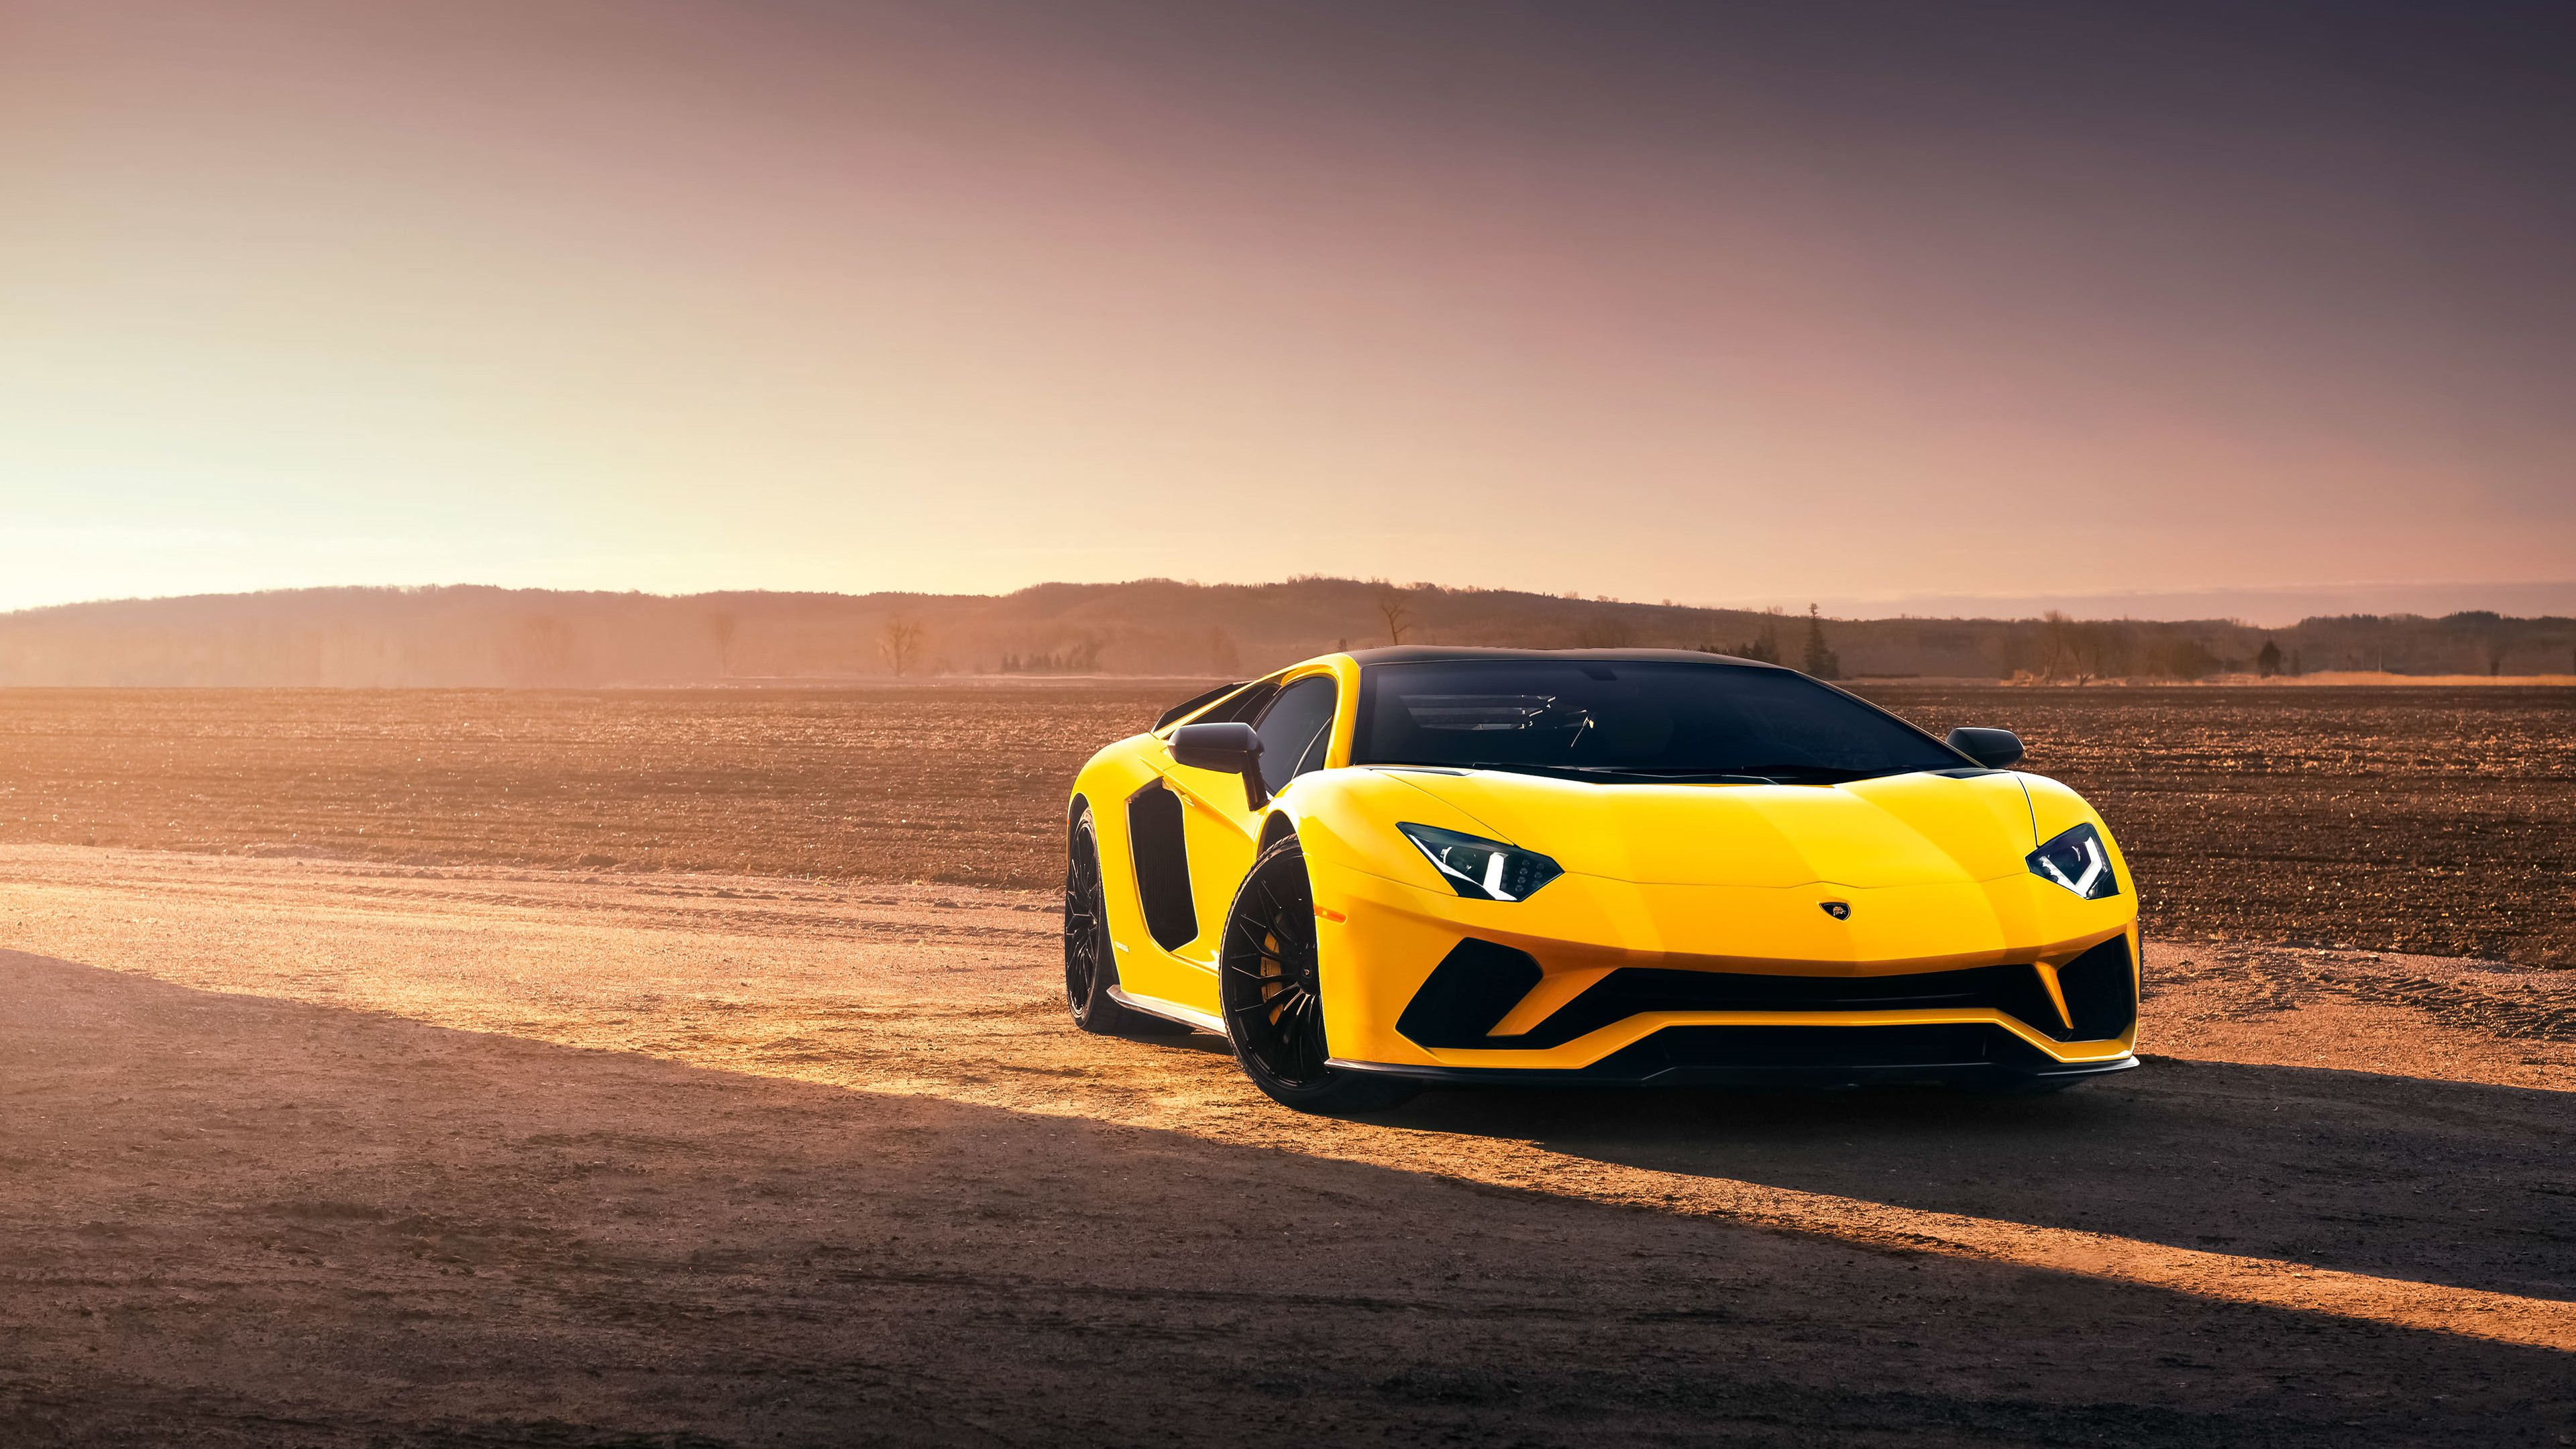 Wallpaper 4k 2018 Lamborghini Aventador S 4k 2018 Cars Wallpapers